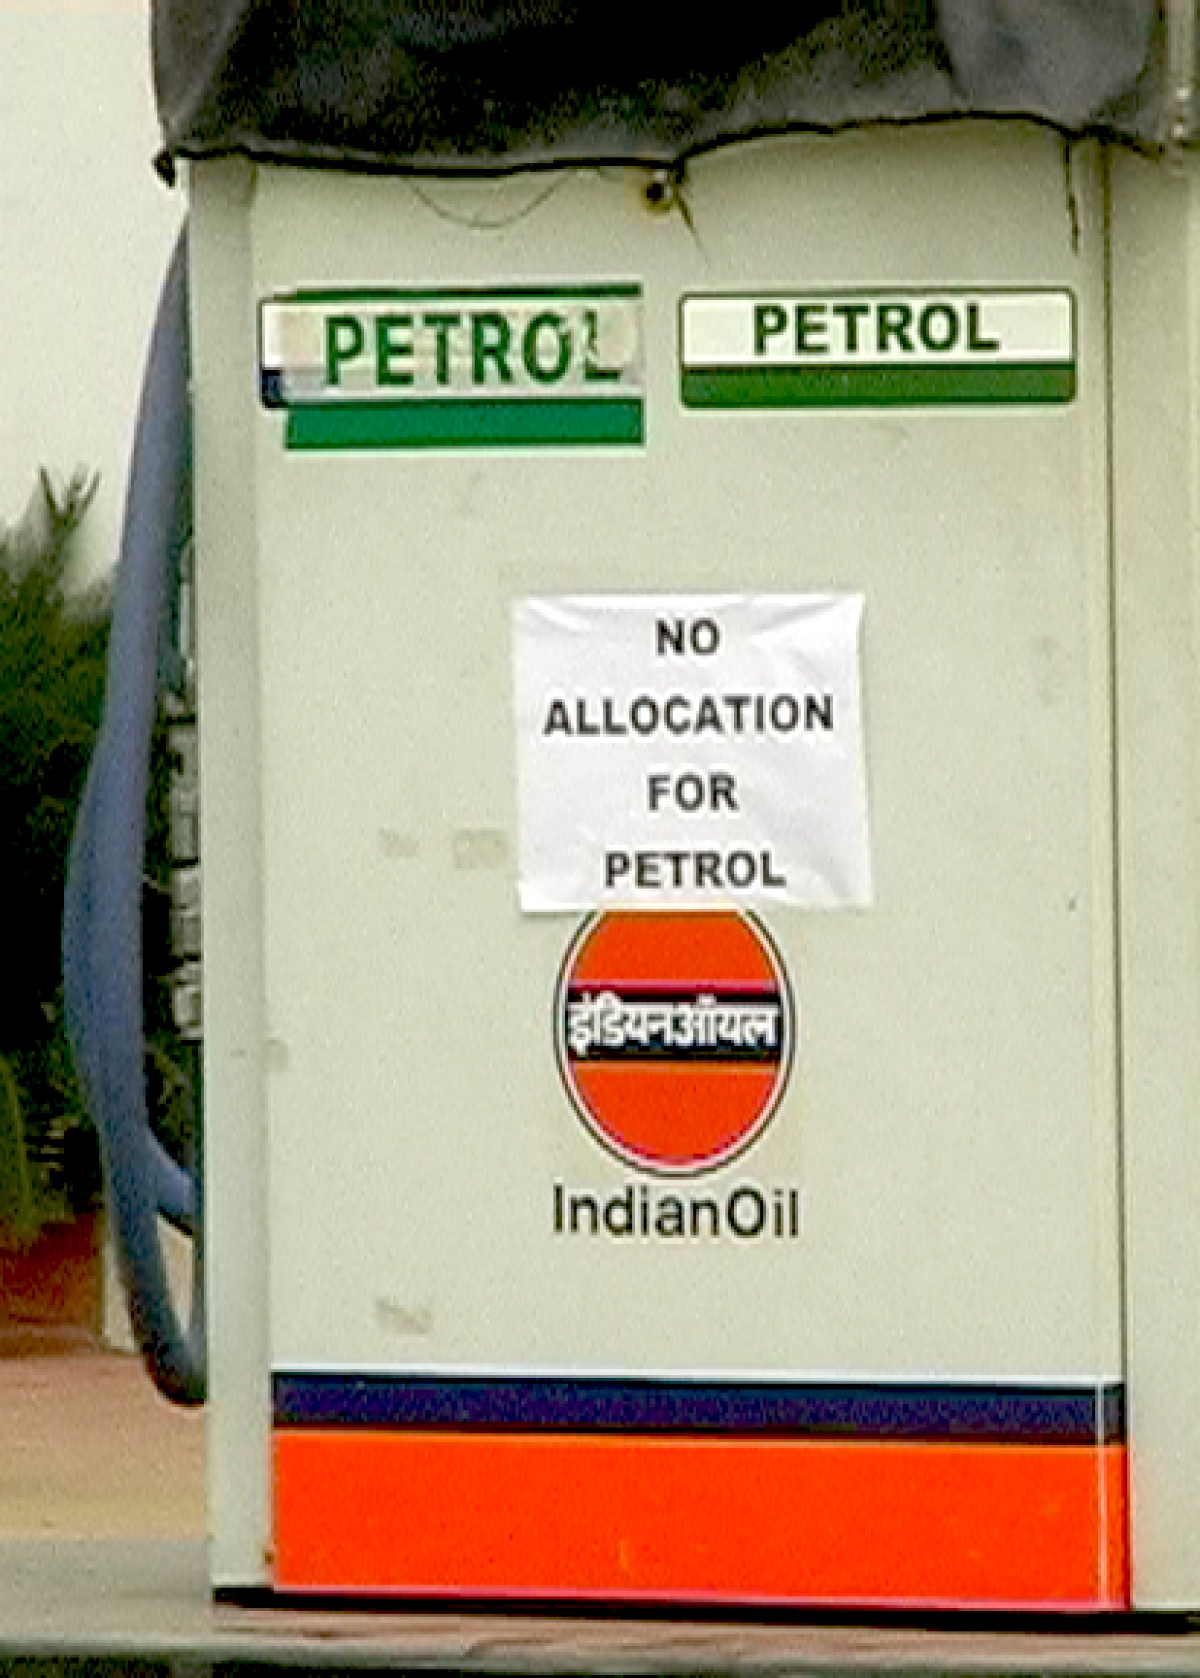 Petrol Price in Manipur Black Market: Rs 200-300/Litre - The